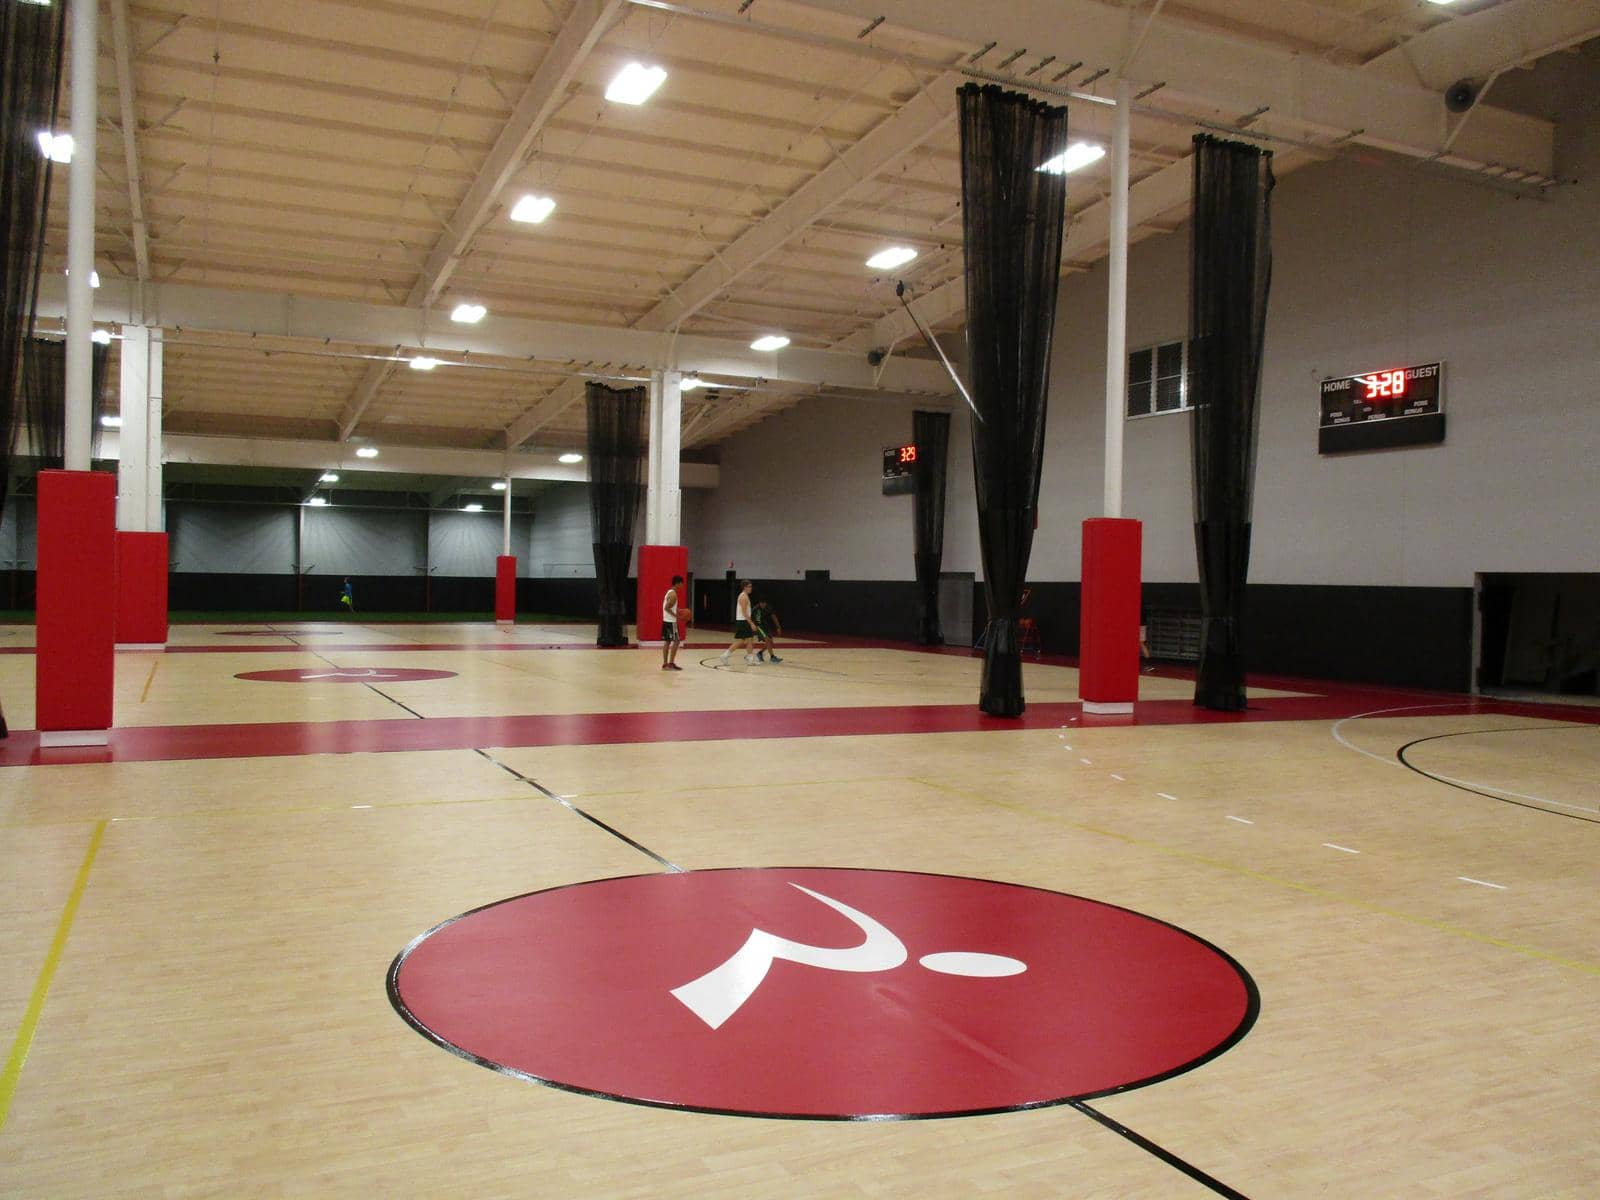 Gymnasium Flooring with custom logos